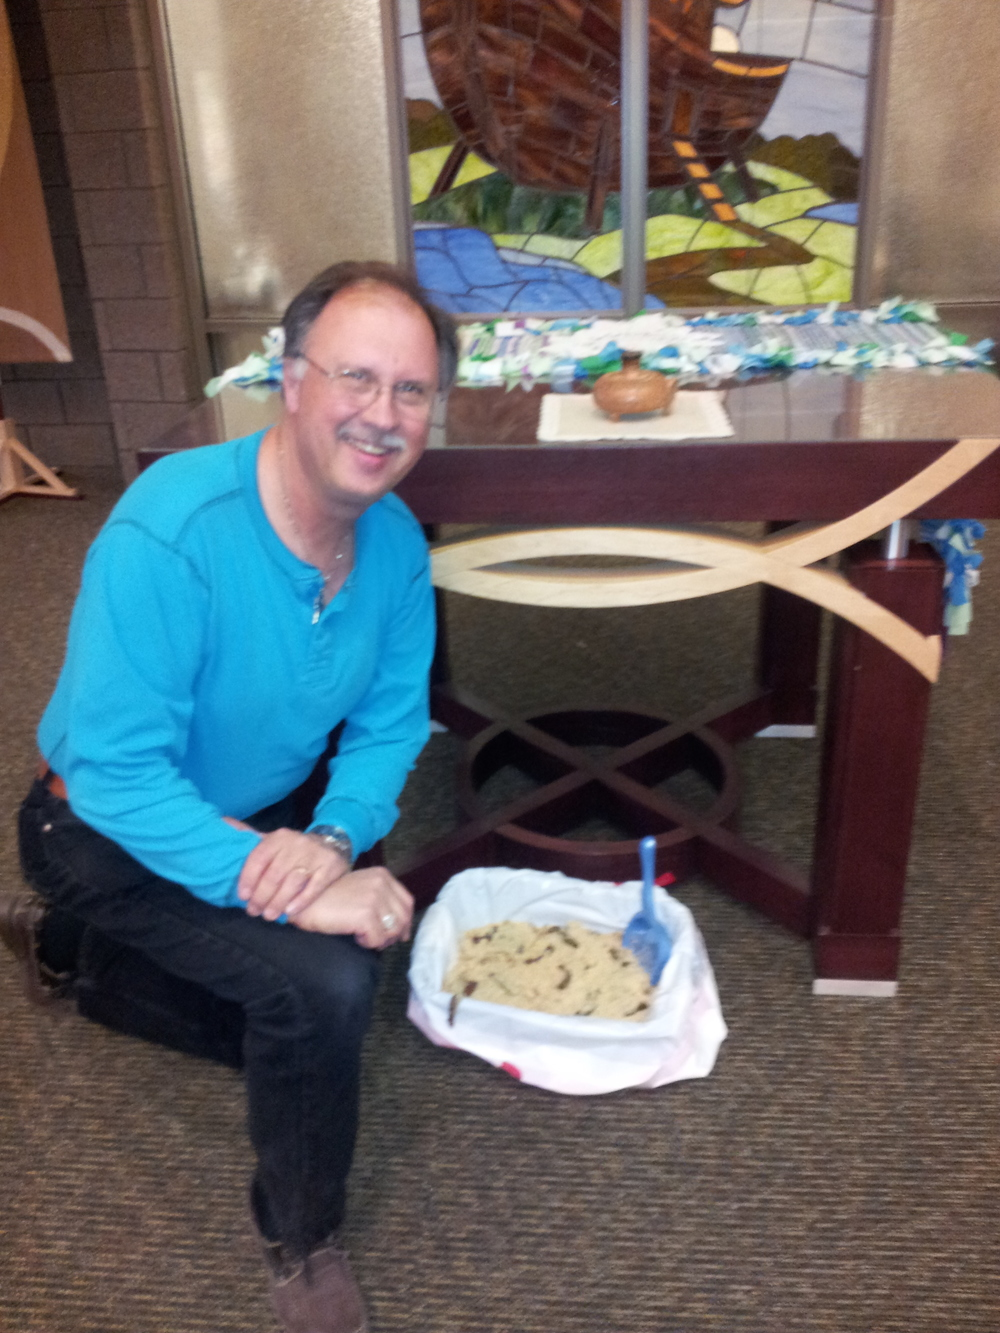 Pastor Dennis, Bremwood's chaplain, posing with my April Fools offering, in the Bremwood Chapel.